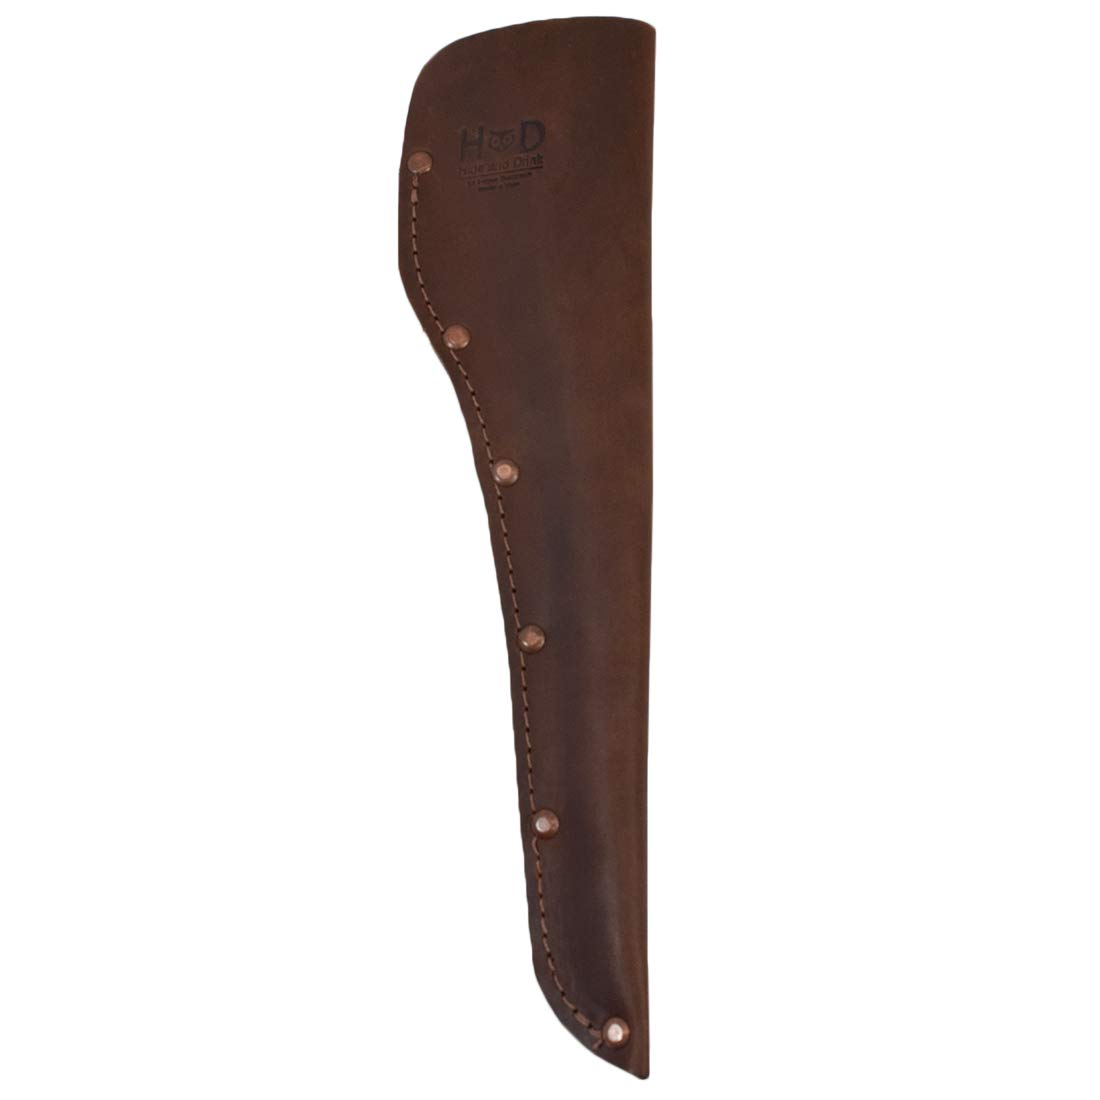 Hide & Drink, Thick Leather Knife Sheath Accepts 6 inch Blade Handmade Includes 101 Year Warranty :: Bourbon Brown by Hide & Drink